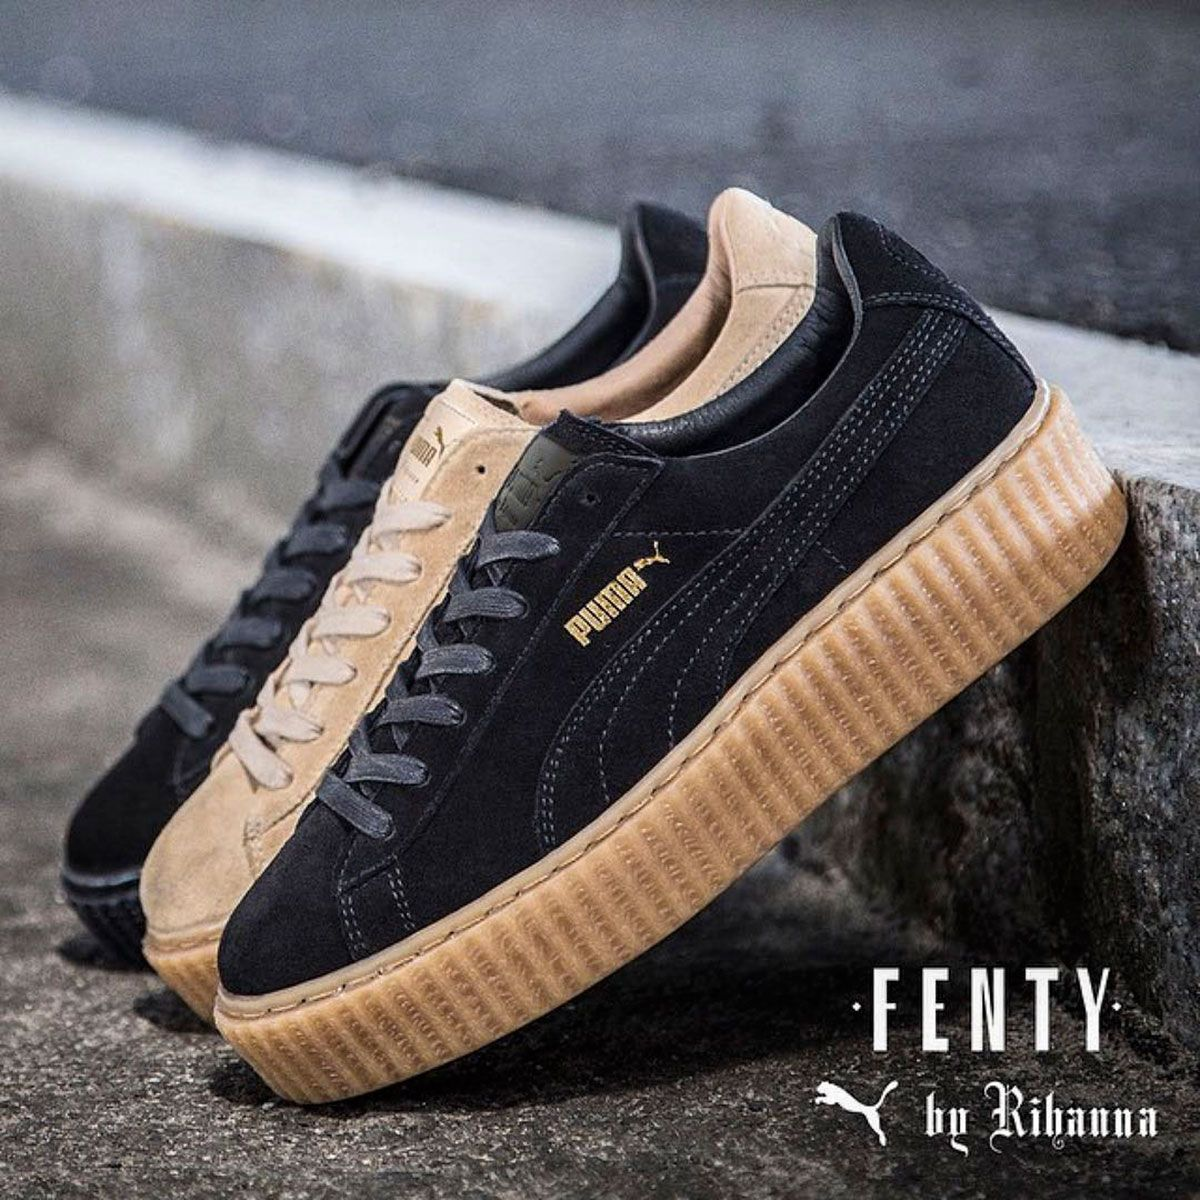 Rihanna Fenty Puma Creepers sold out online  3015082a2